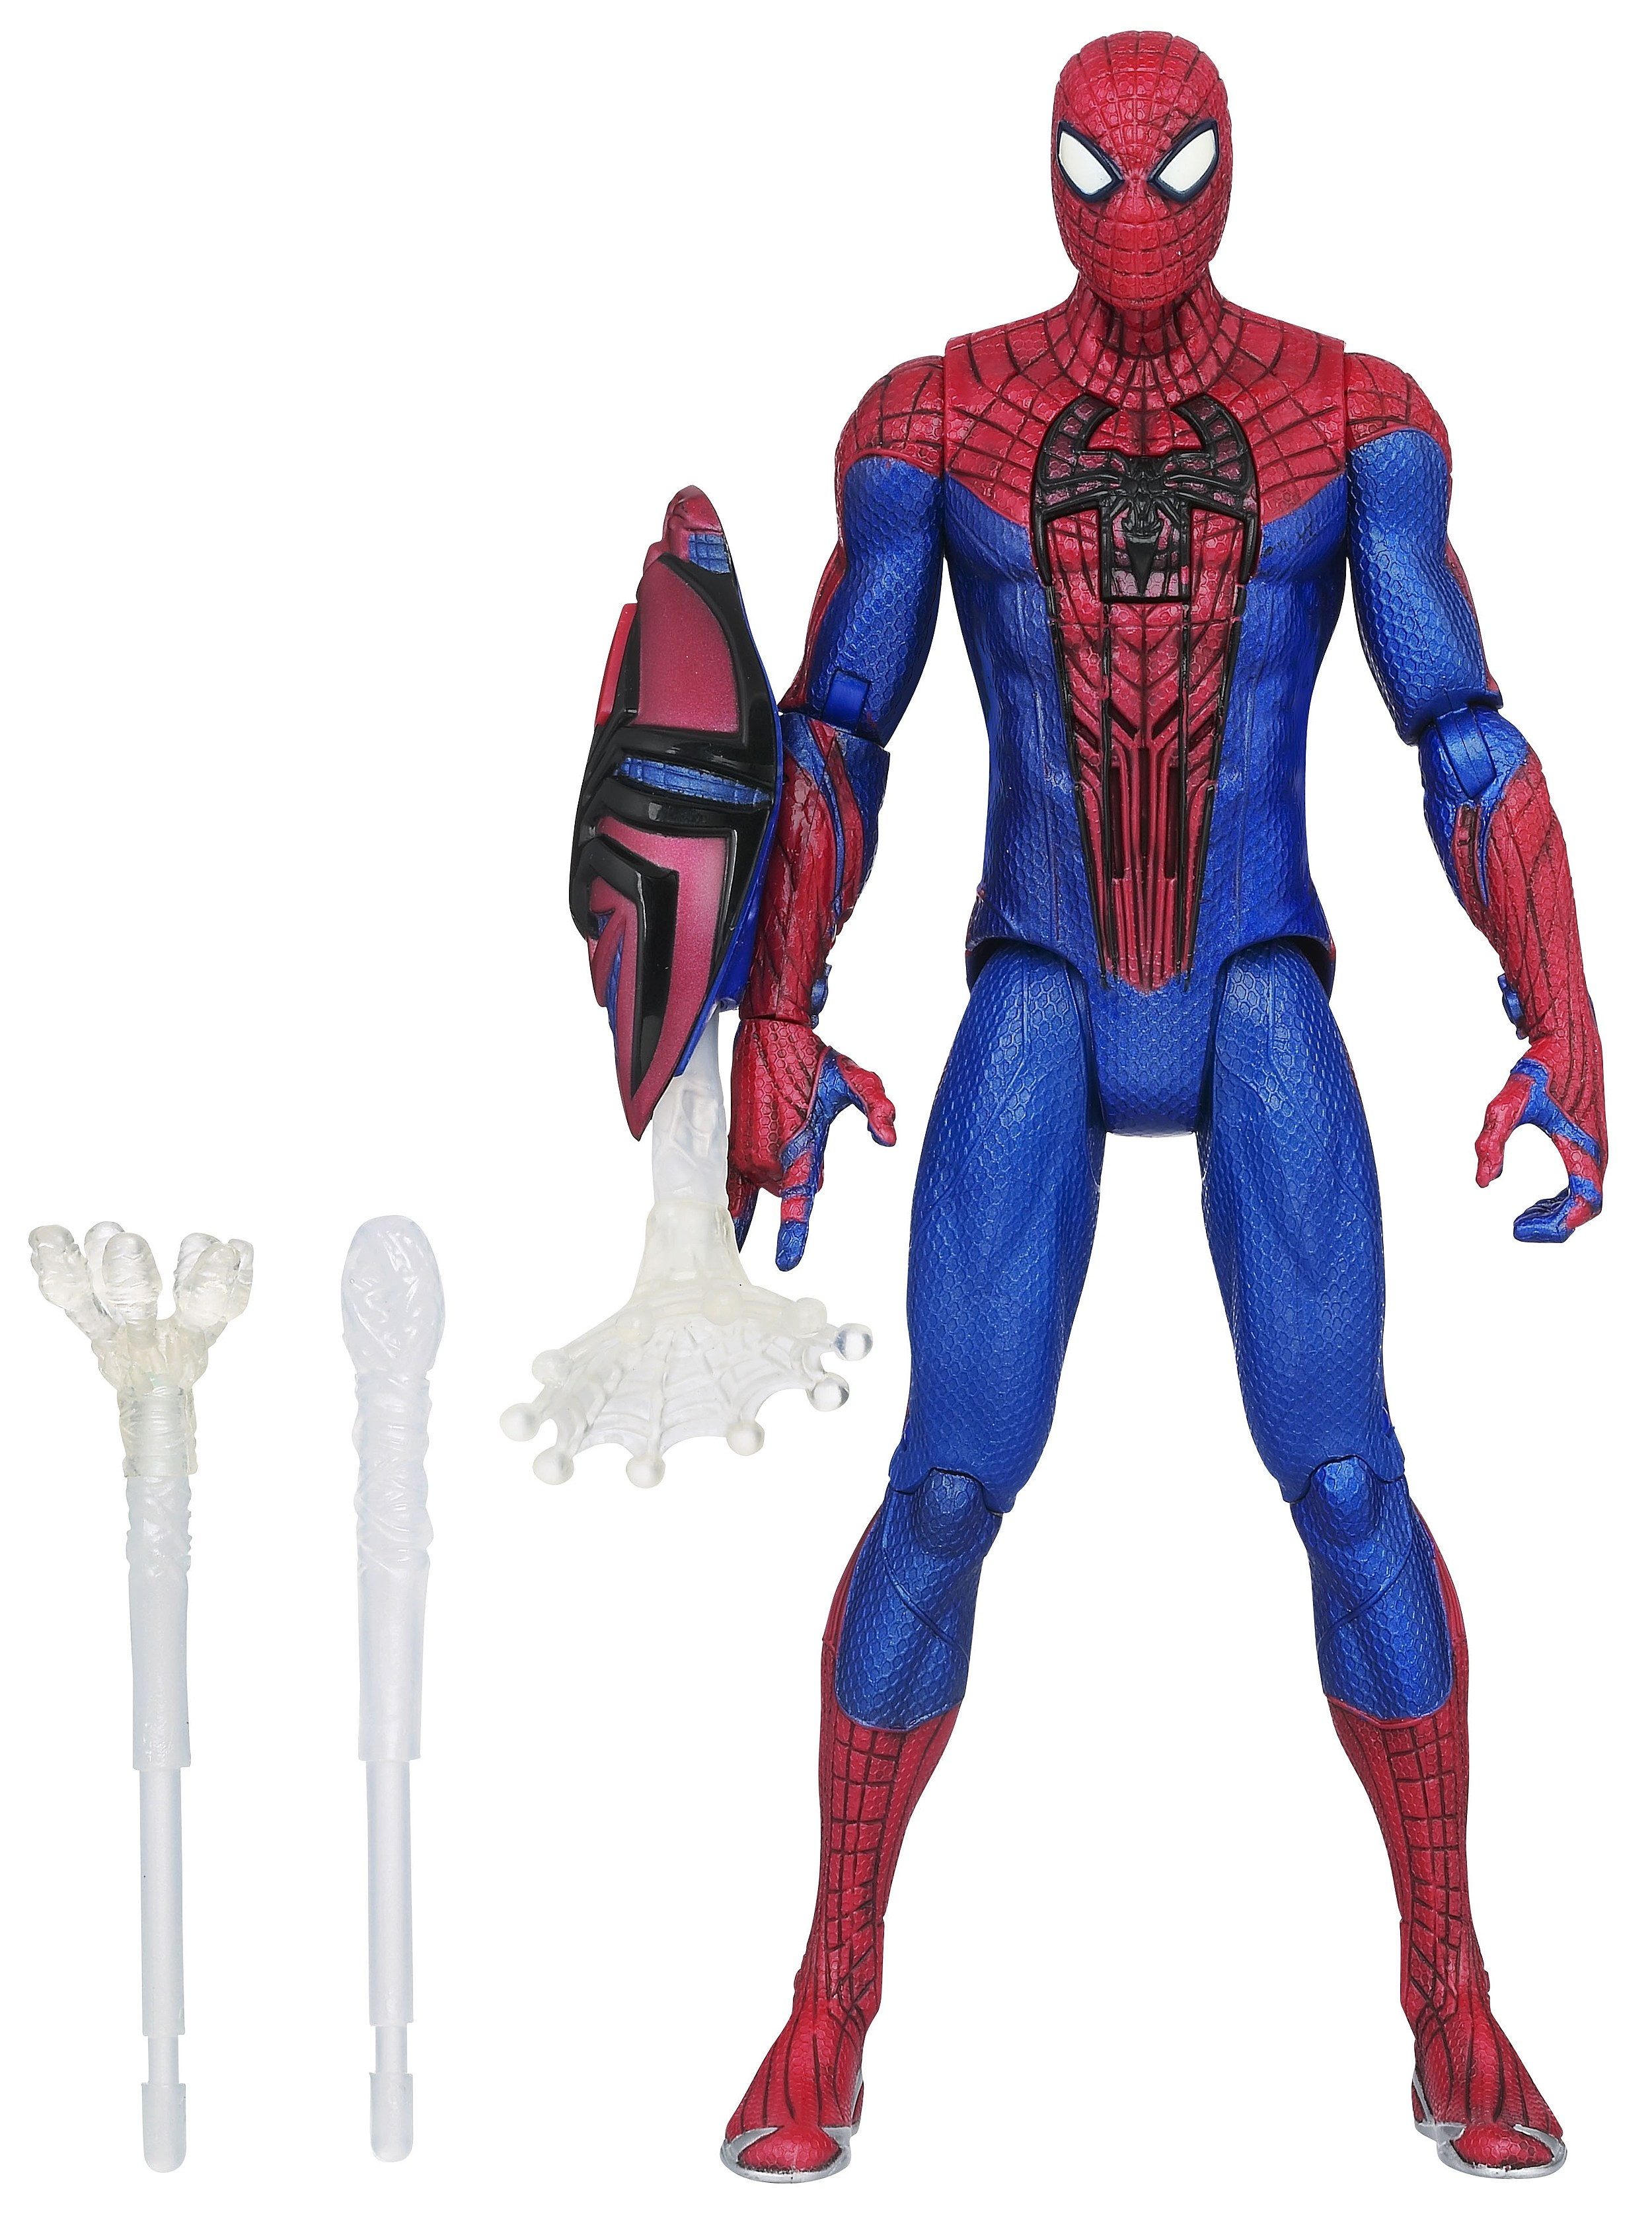 The amazing spider man toys - photo#2